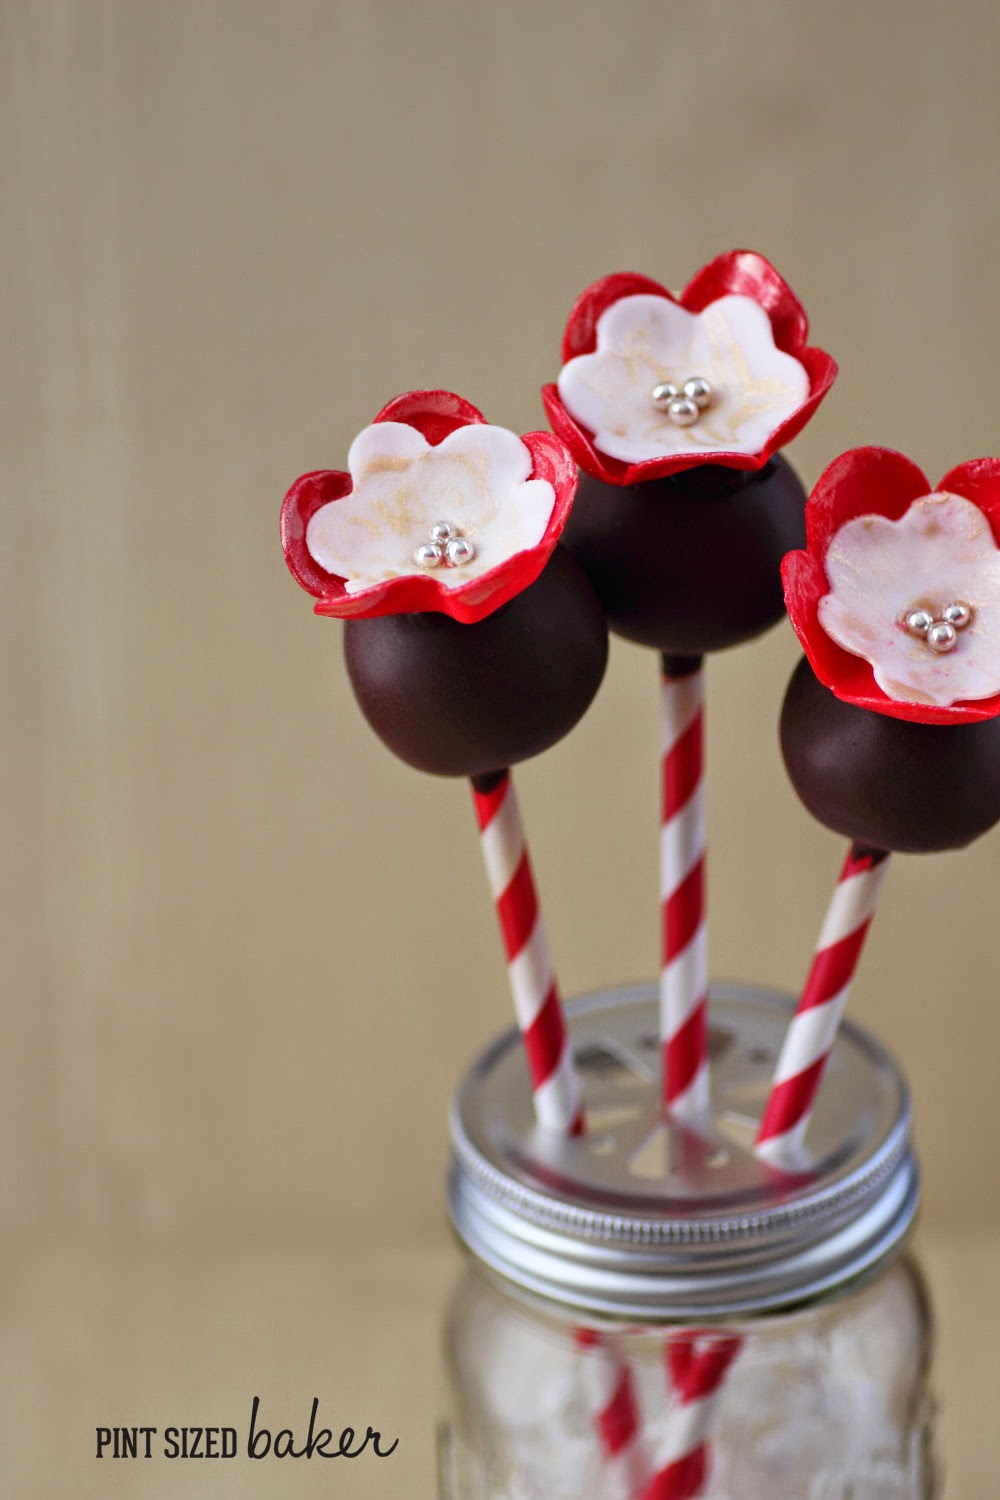 I'm loving these easy cake pops with pretty fondant flowers! My daughter would love them!